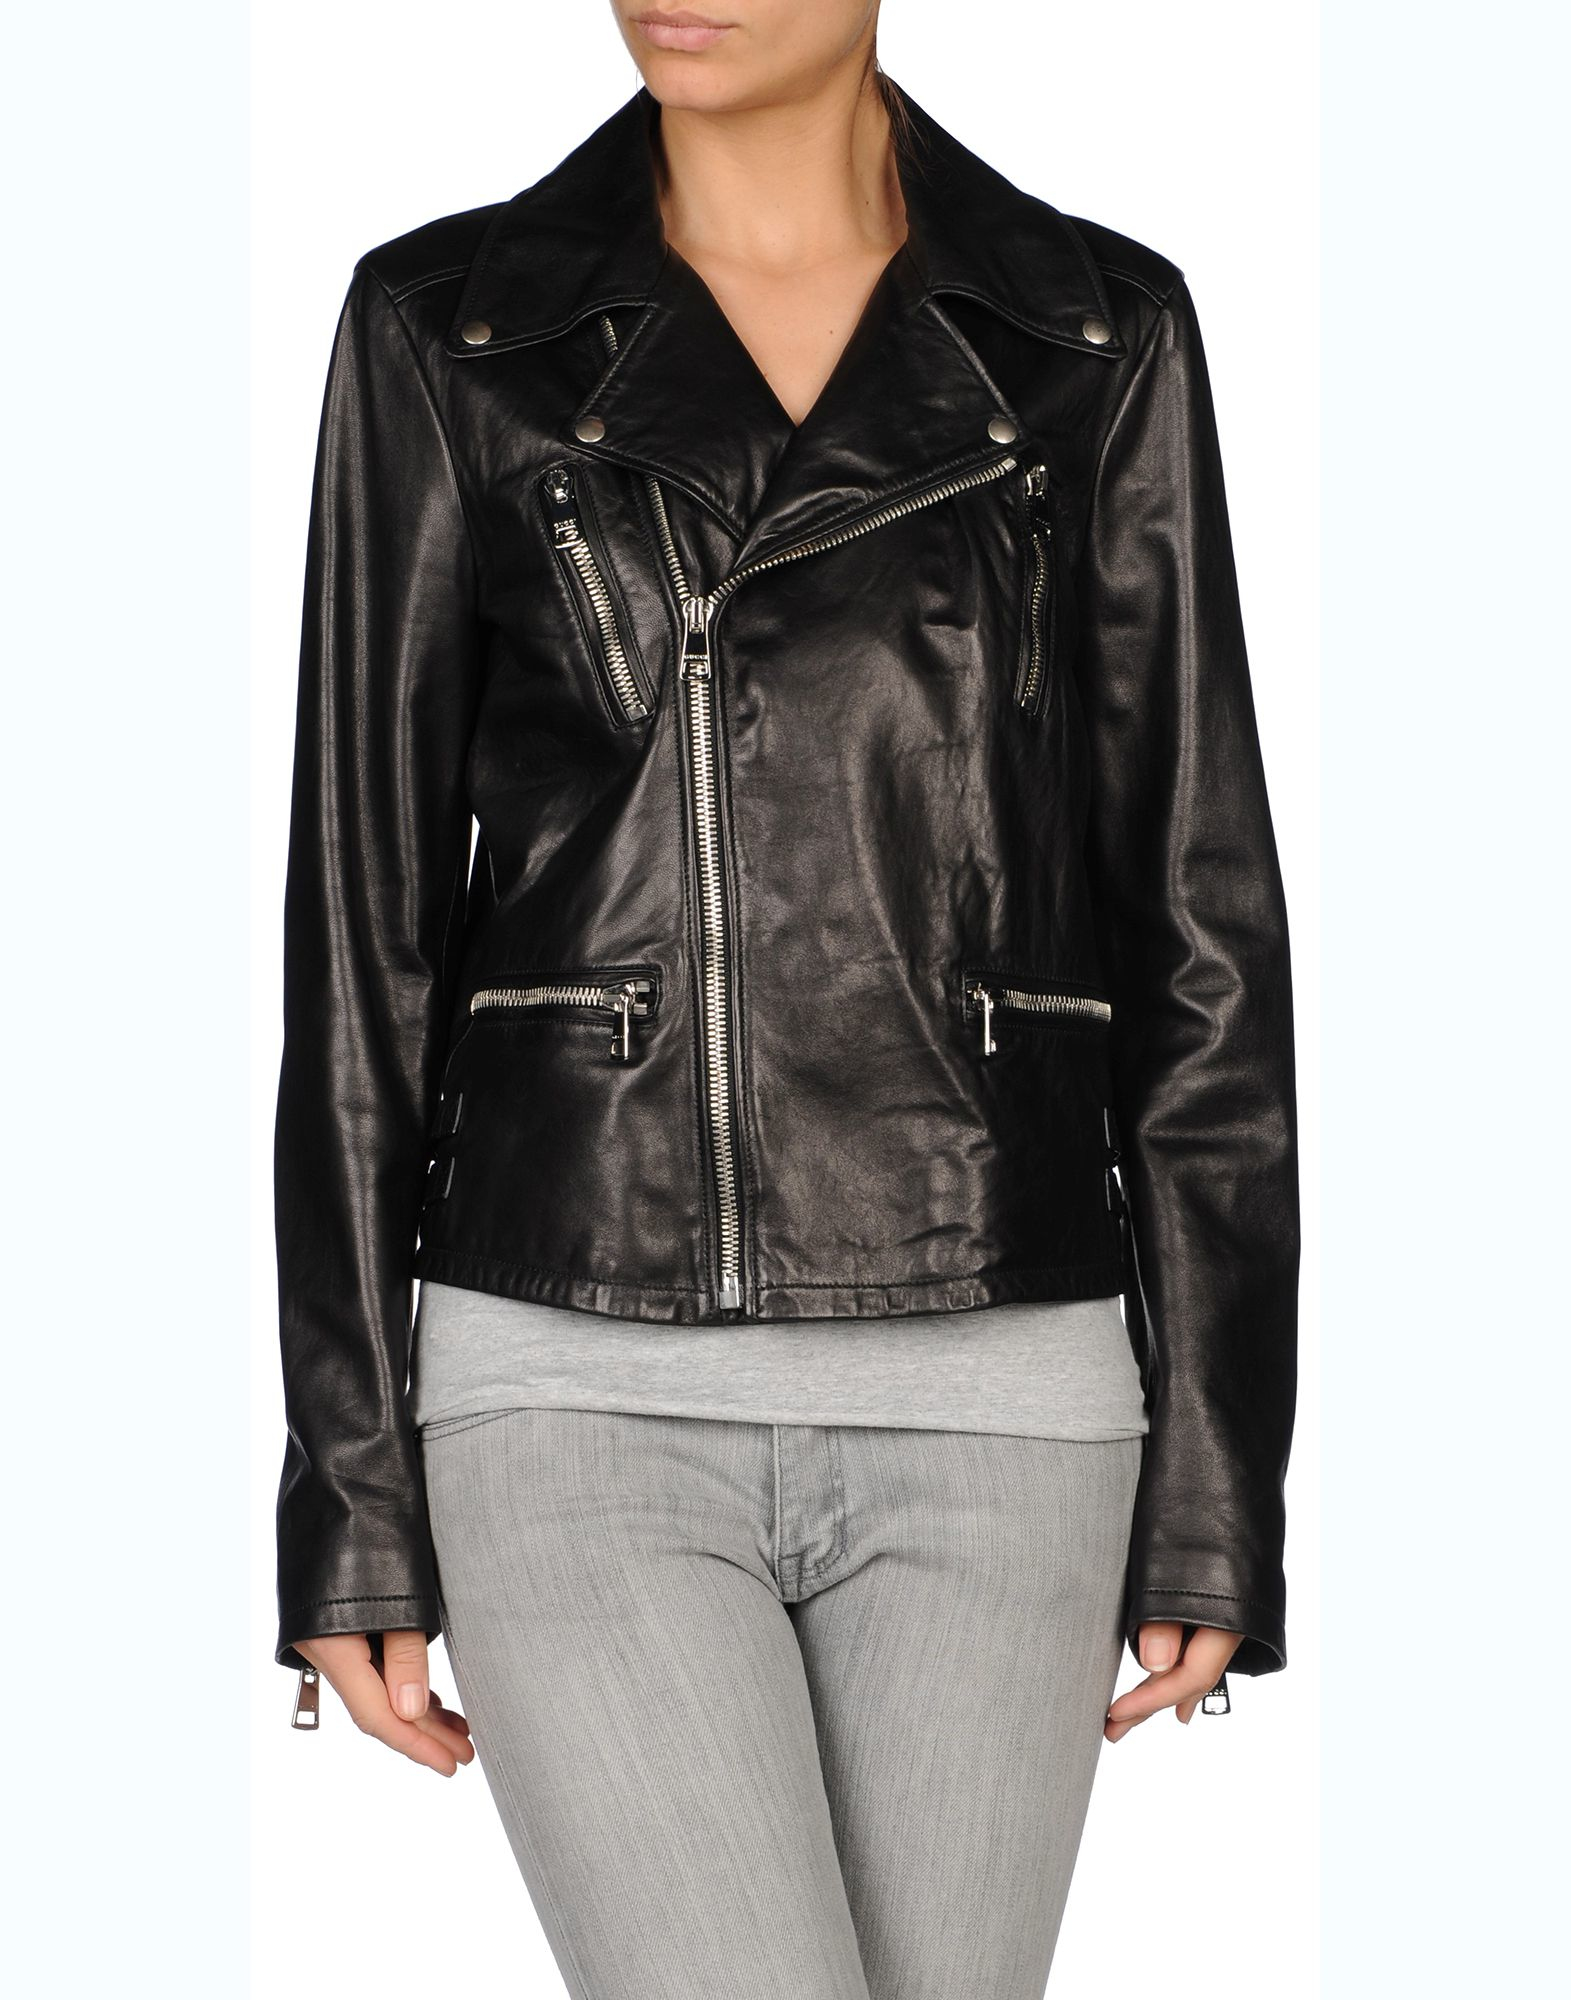 Gucci Leather Jacket in Black   Lyst